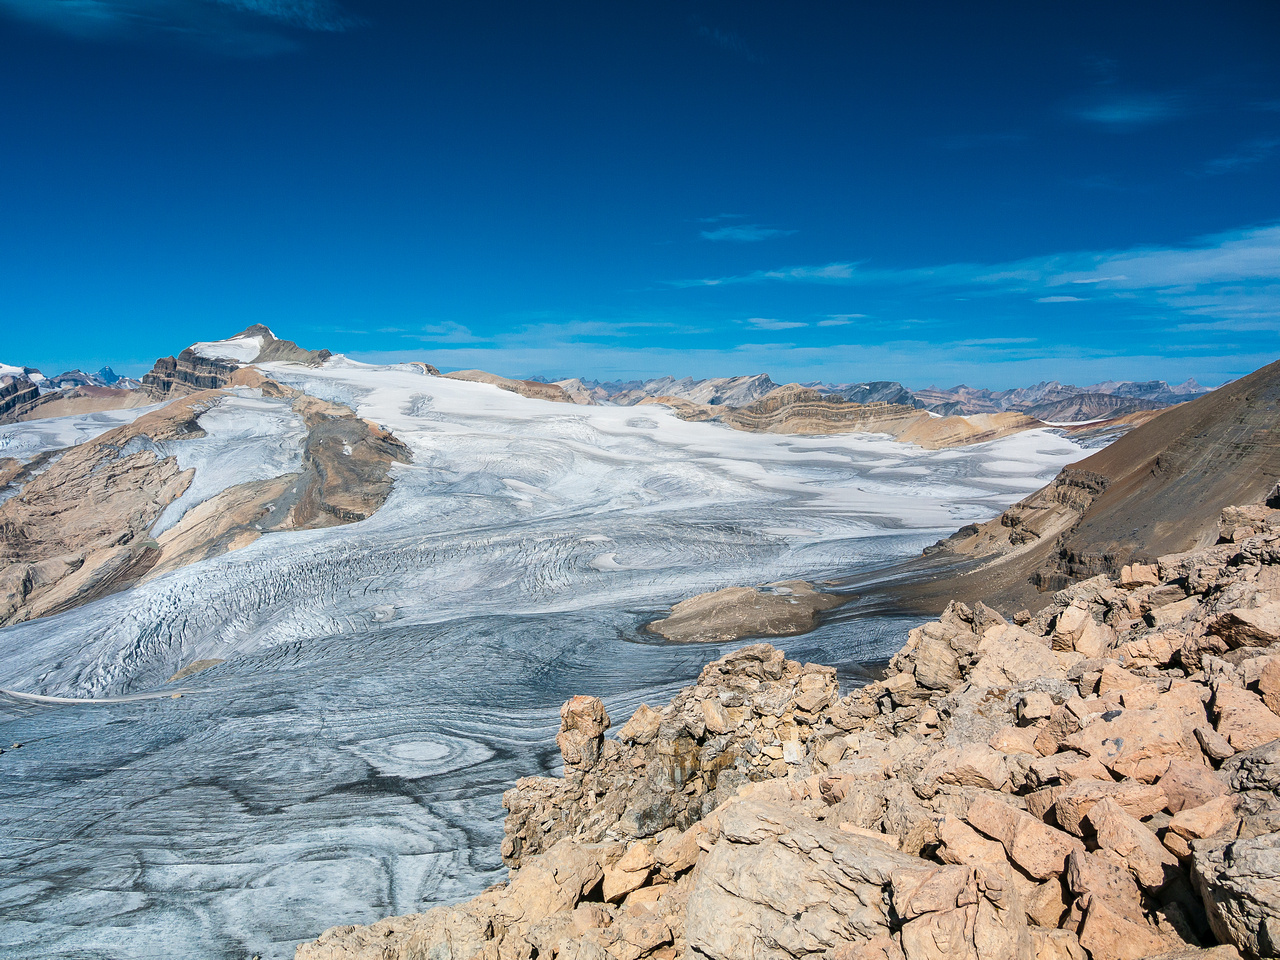 An incredible view of Mount Balfour and the Waputik Icefield.